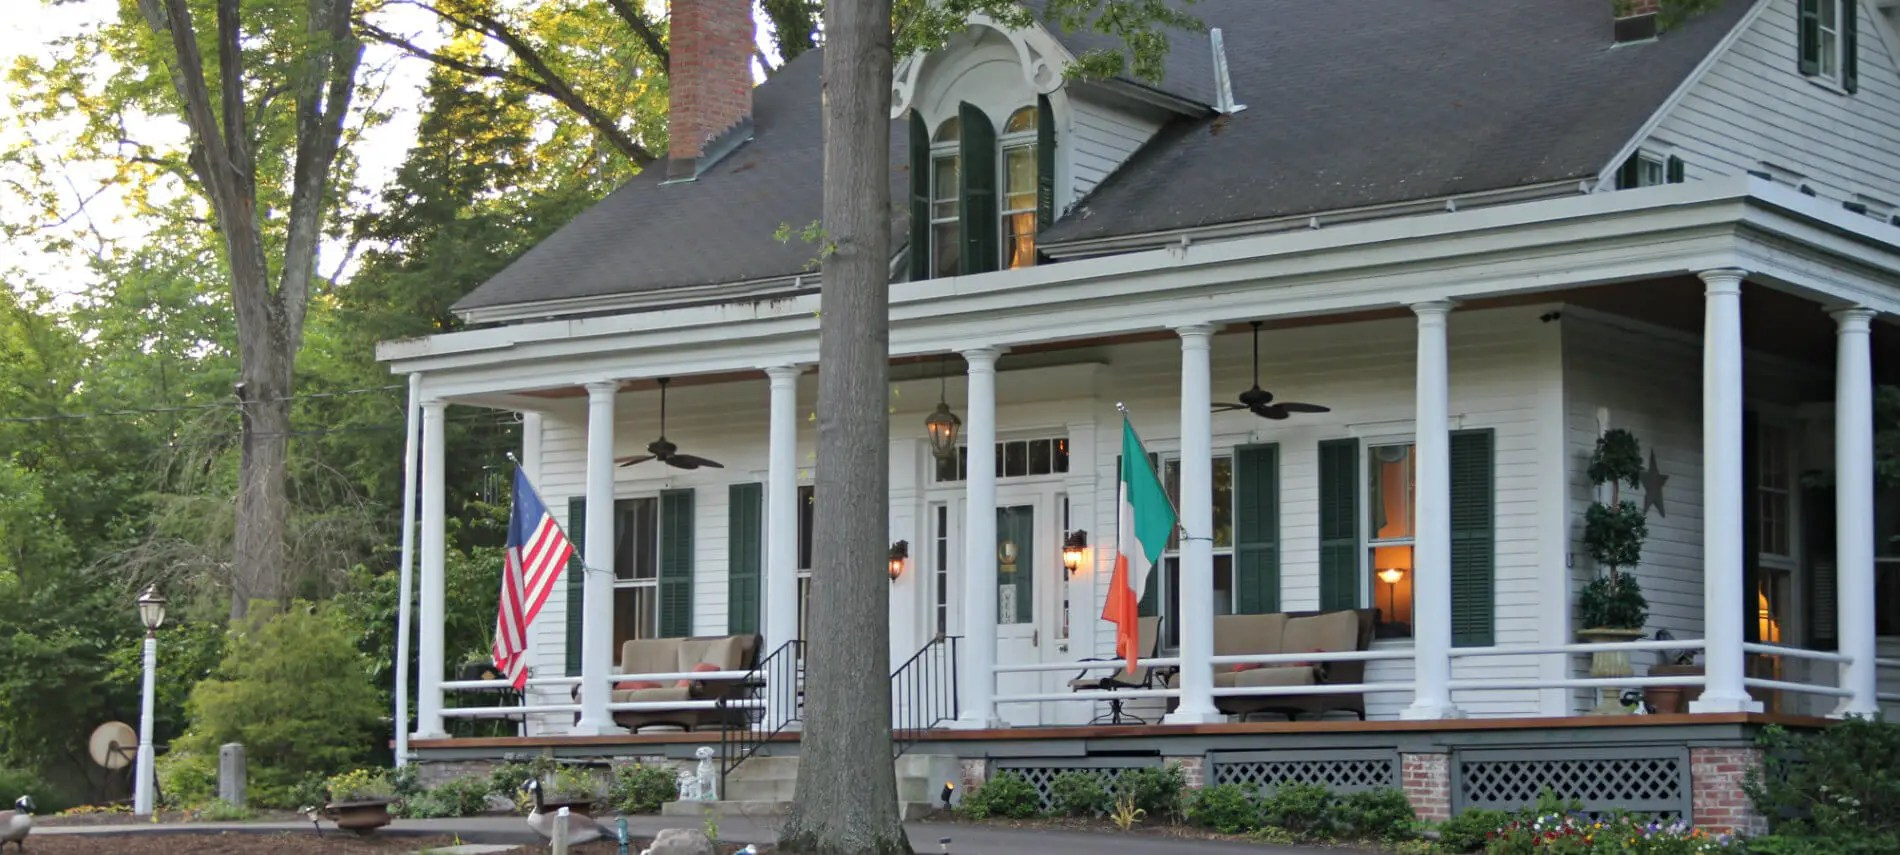 B&b Luxe Caldwell House Bed And Breakfast Hudson River Valley Ny